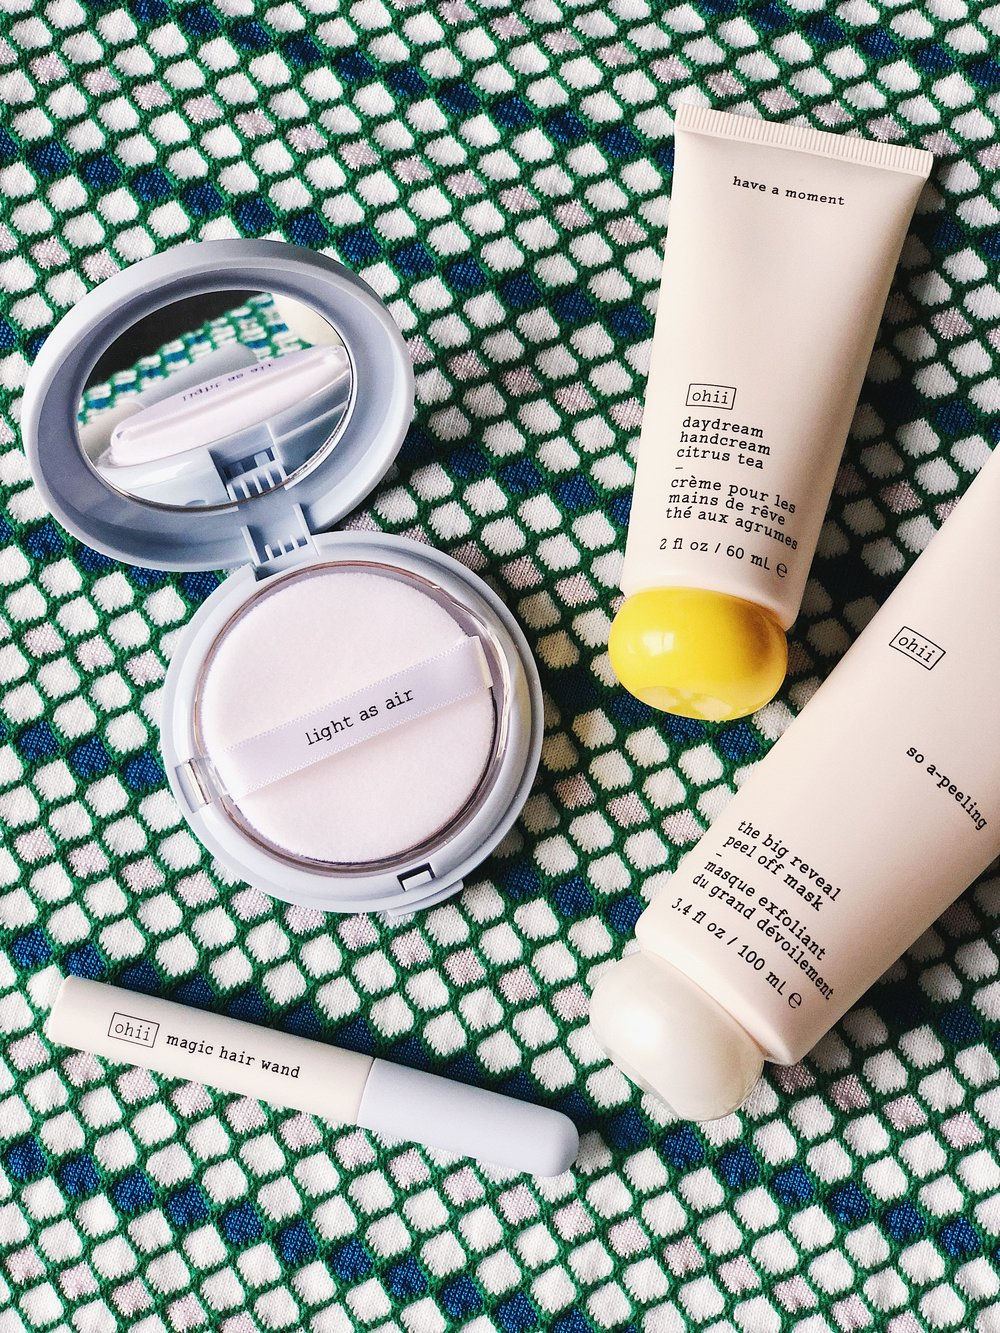 """a fresh line of fun products meant to fill in the blanks of your beauty routine."" - If you haven't heard of Ohii yet, this is a brand new beauty brand by Urban Outfitters. It's vegan, so you can feel good putting it on your skin, and then it's just packaged in a cute, simple way. Very much to my liking. I've tried out some of the new Ohii products, so I thought I would run you through my thoughts."